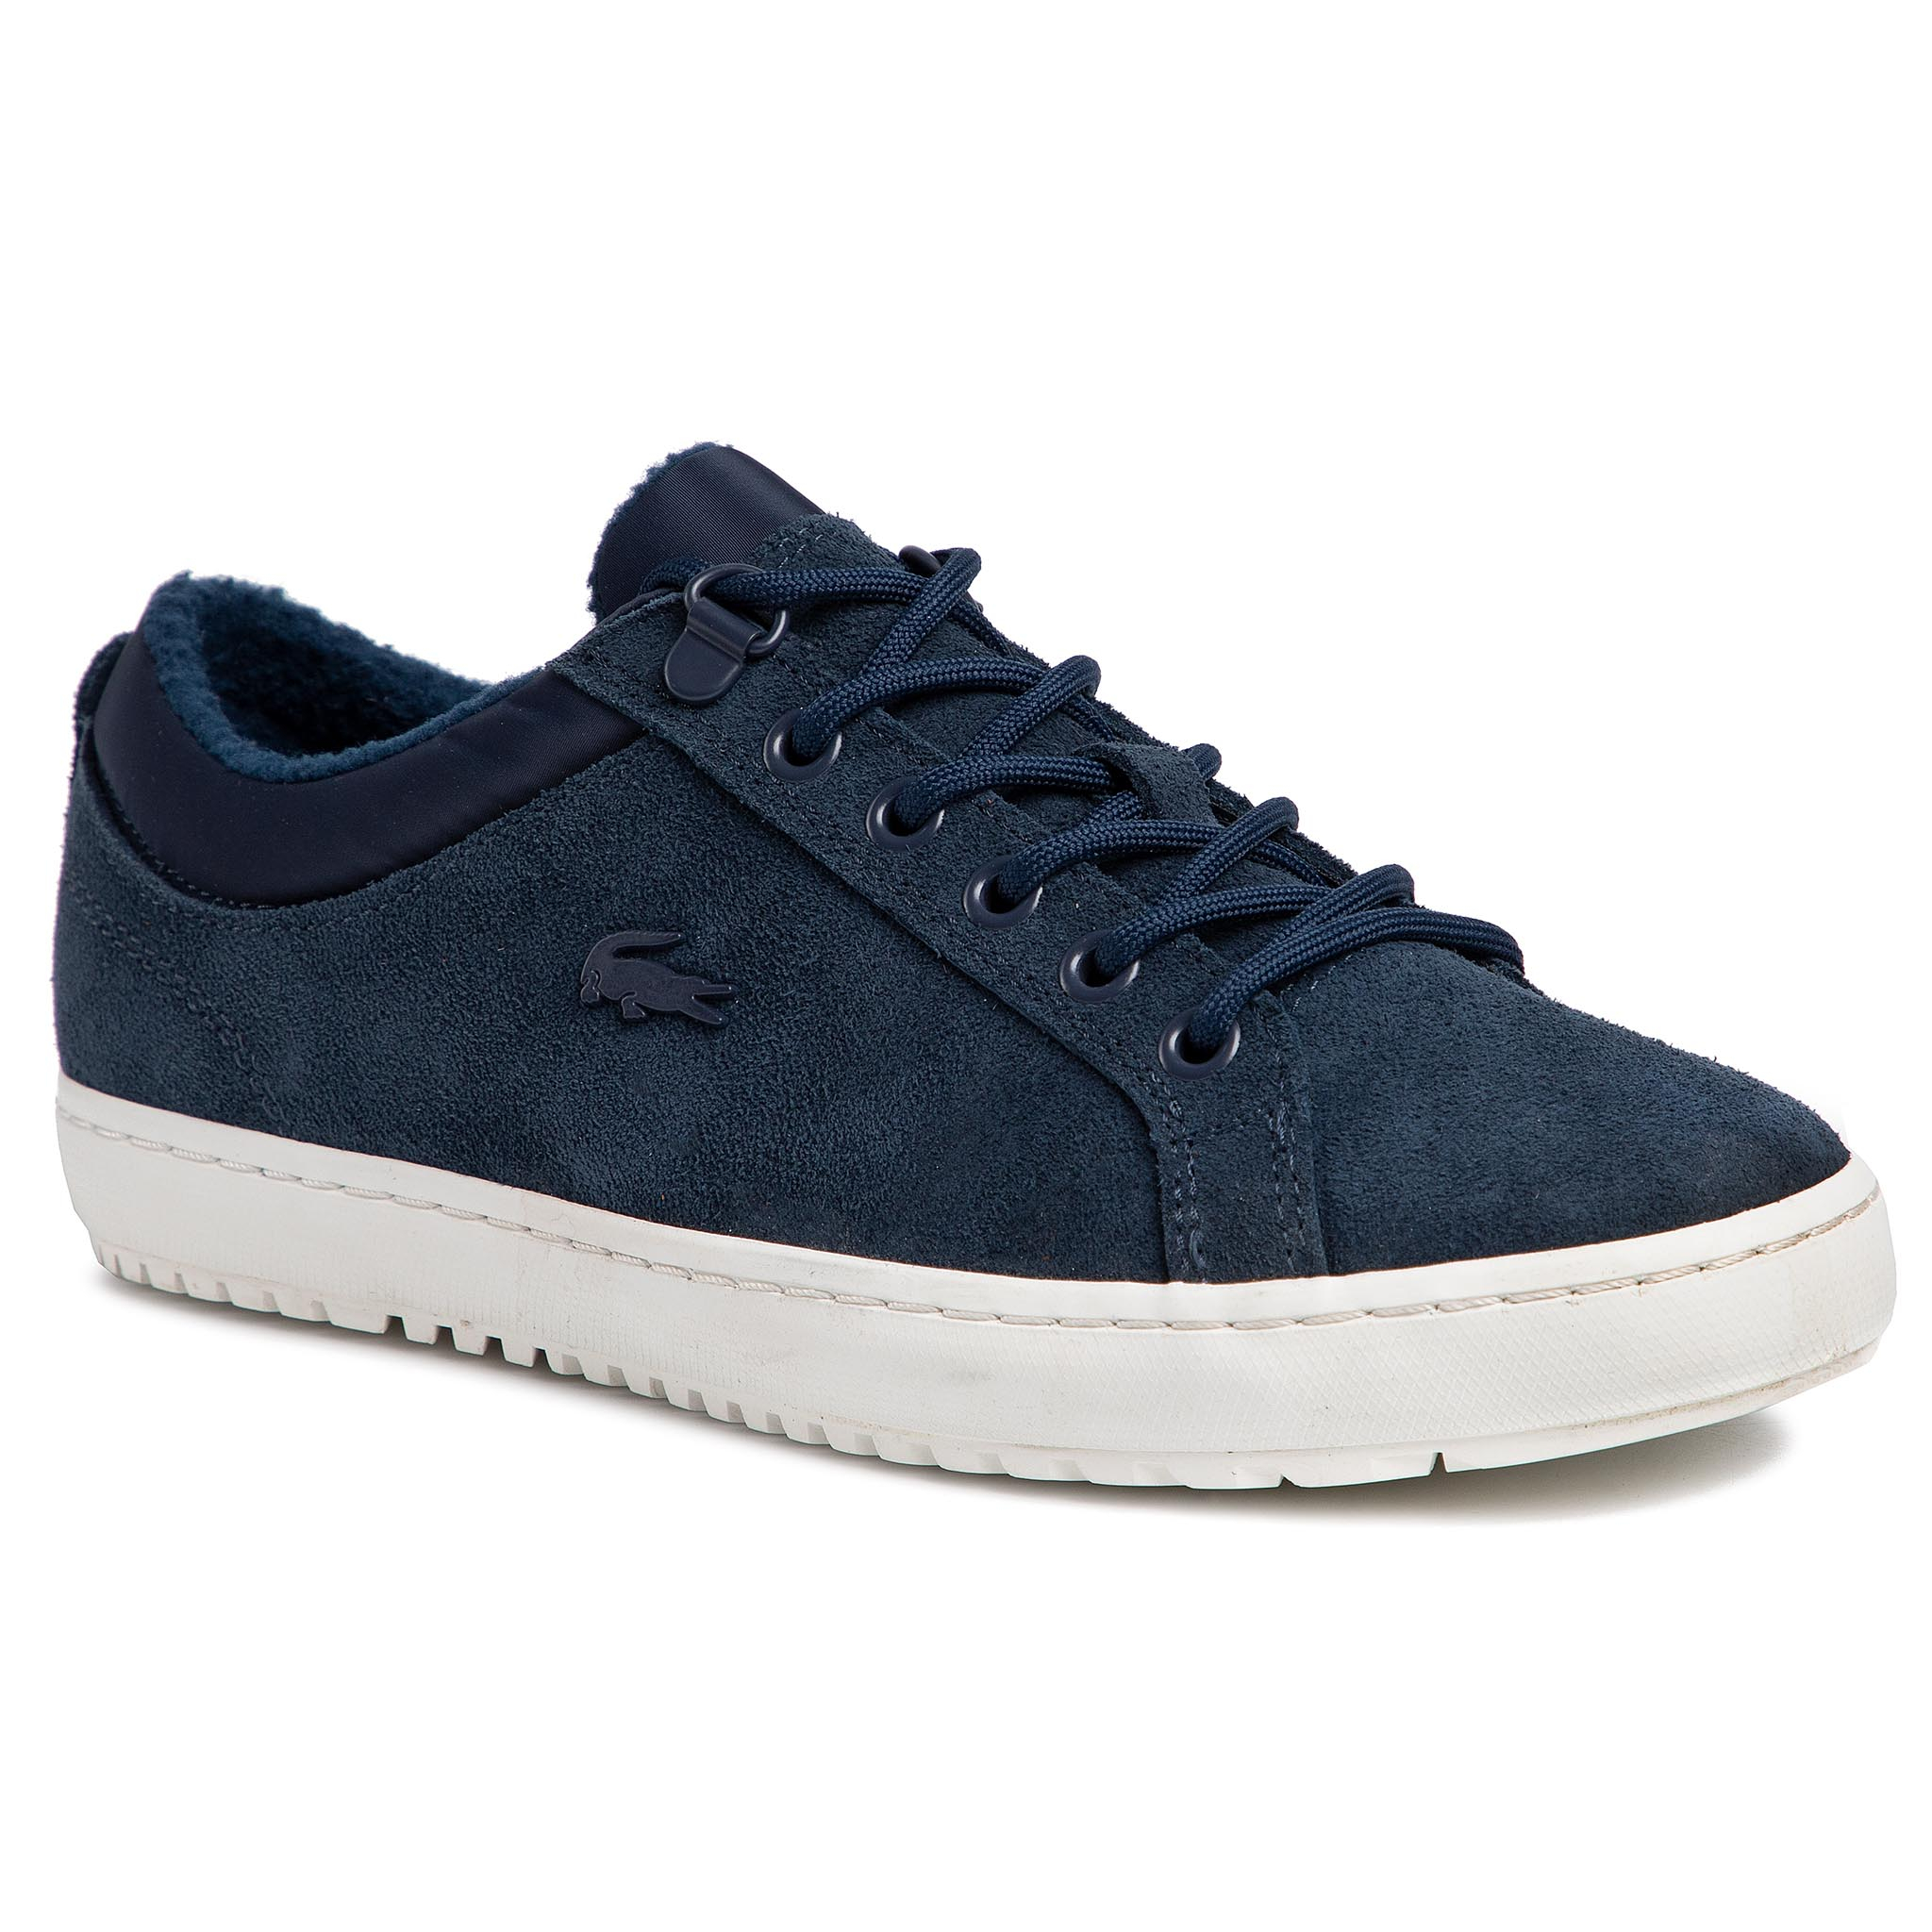 Sneakers LACOSTE - Straightset Insulate 3191Cfa 7-38CFA0008J18 Nvy/Off Wht